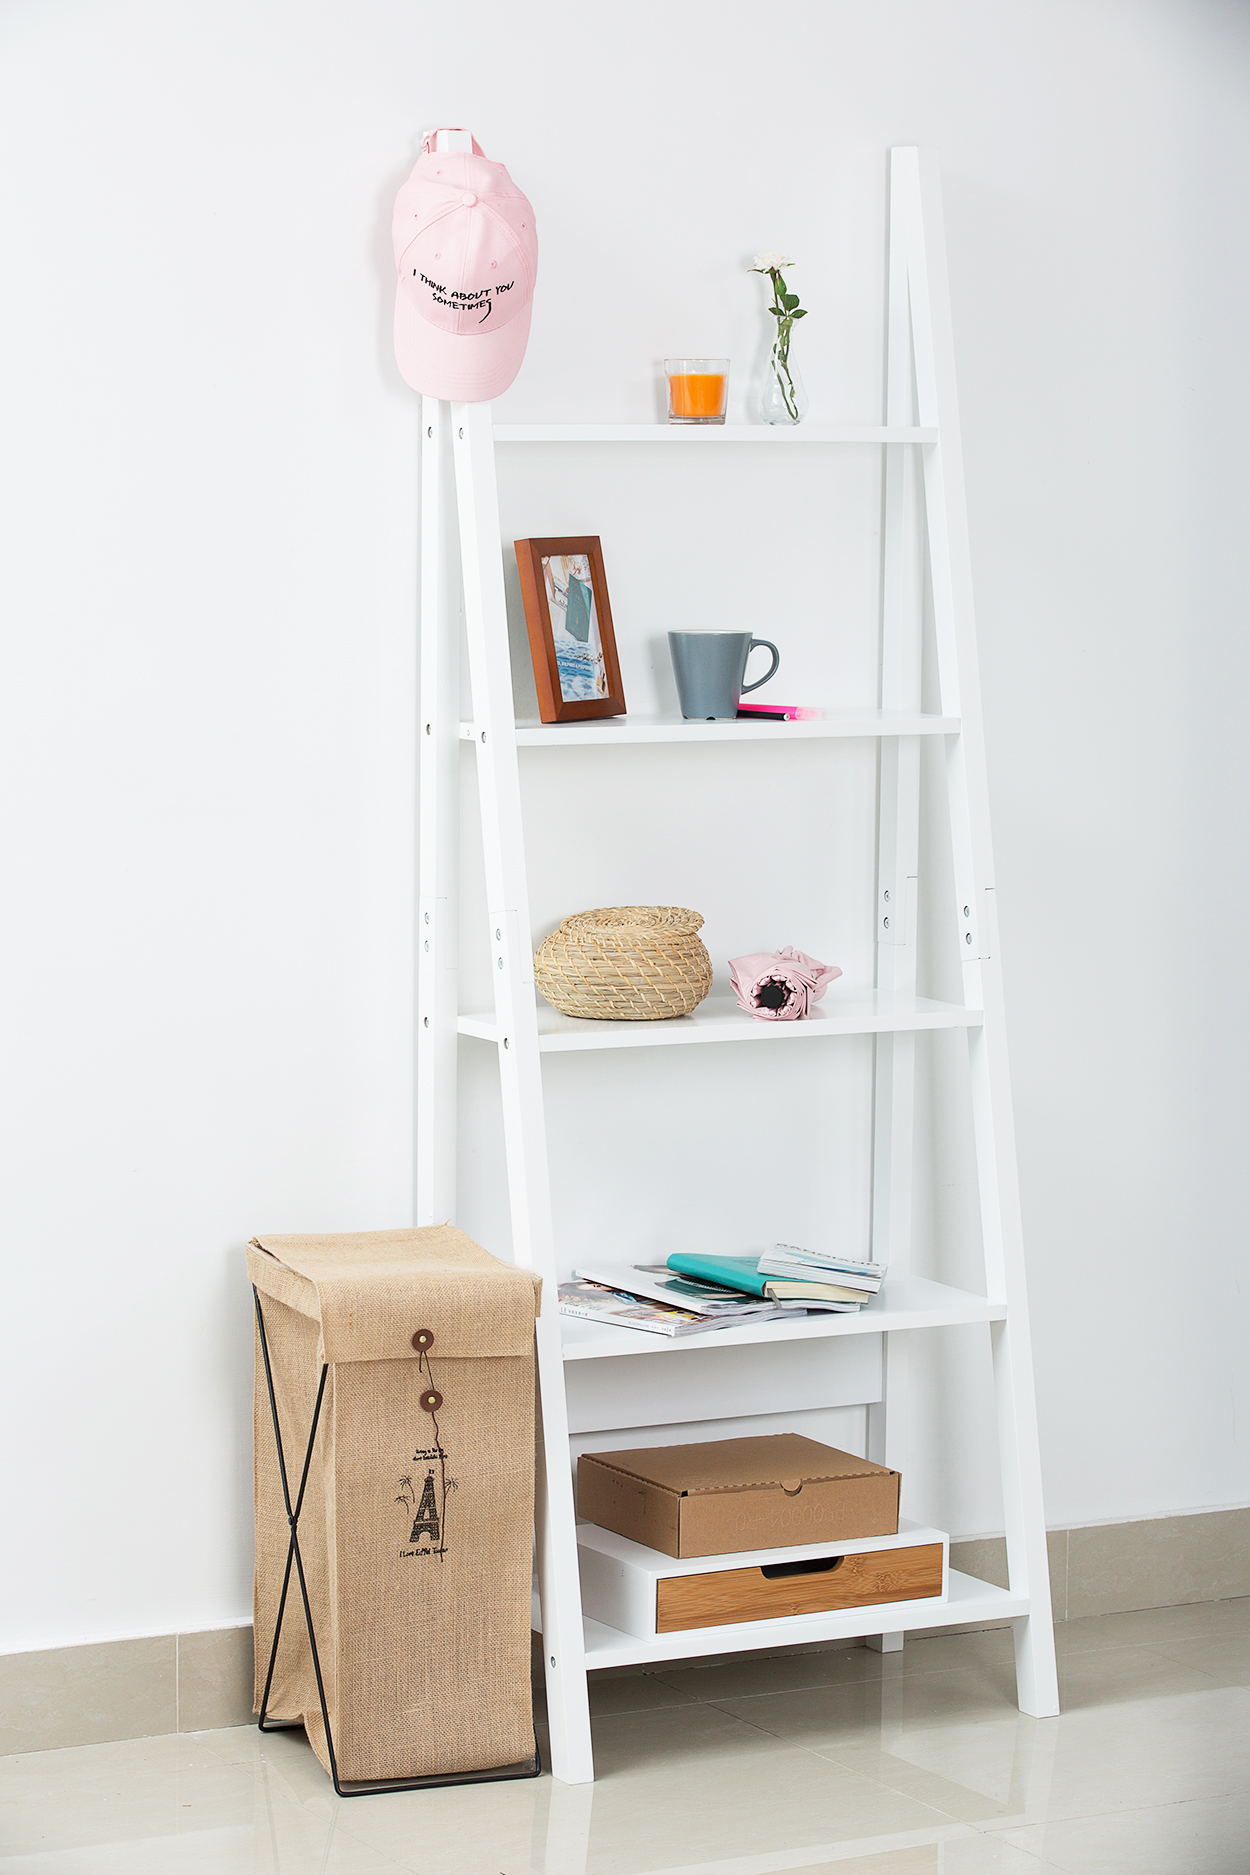 Orolay Modern Ladder Wall Shelf Display Stand Shelving